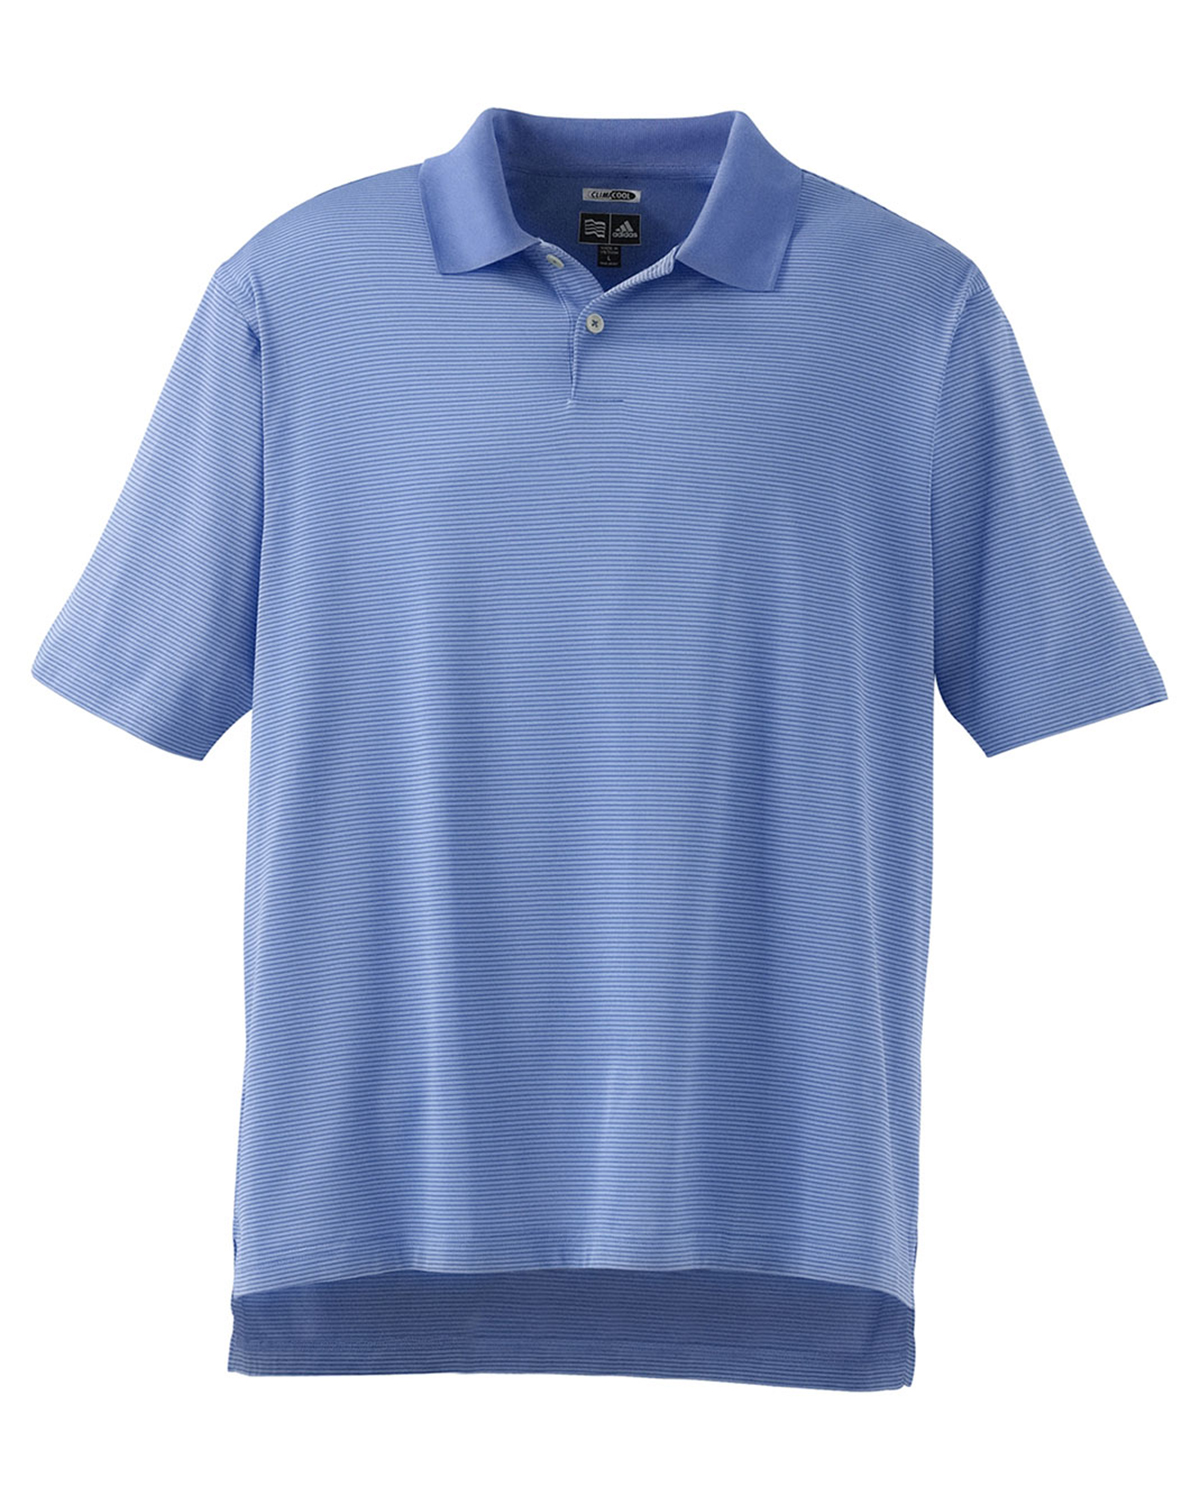 Climacool classic stripe jersey polo jersey t shirts for Big n tall shirts